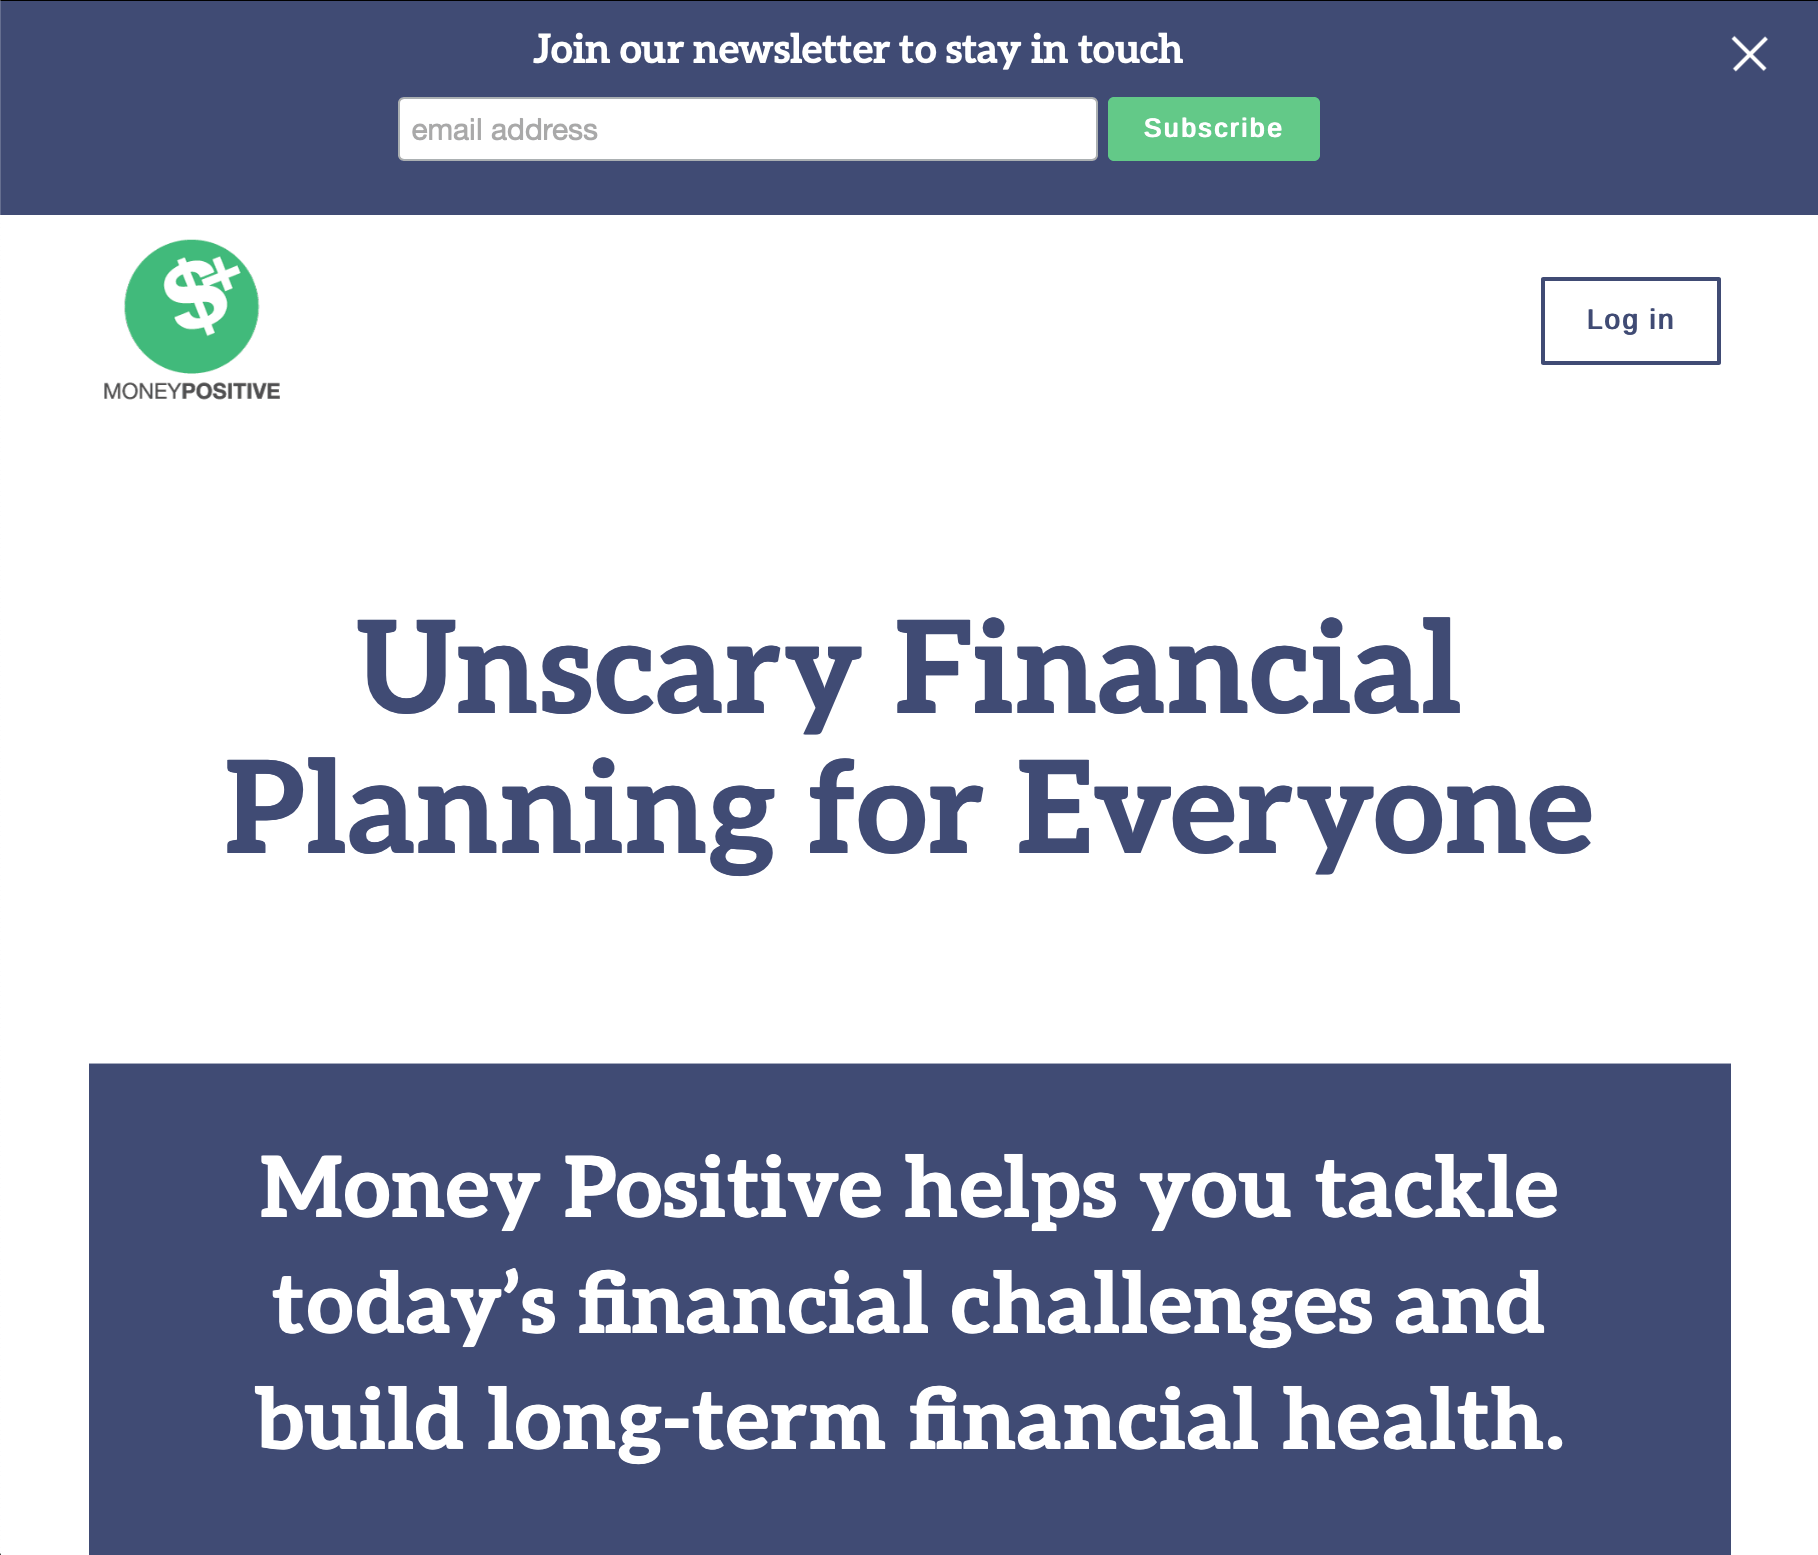 a screenshot of the Money Positive website